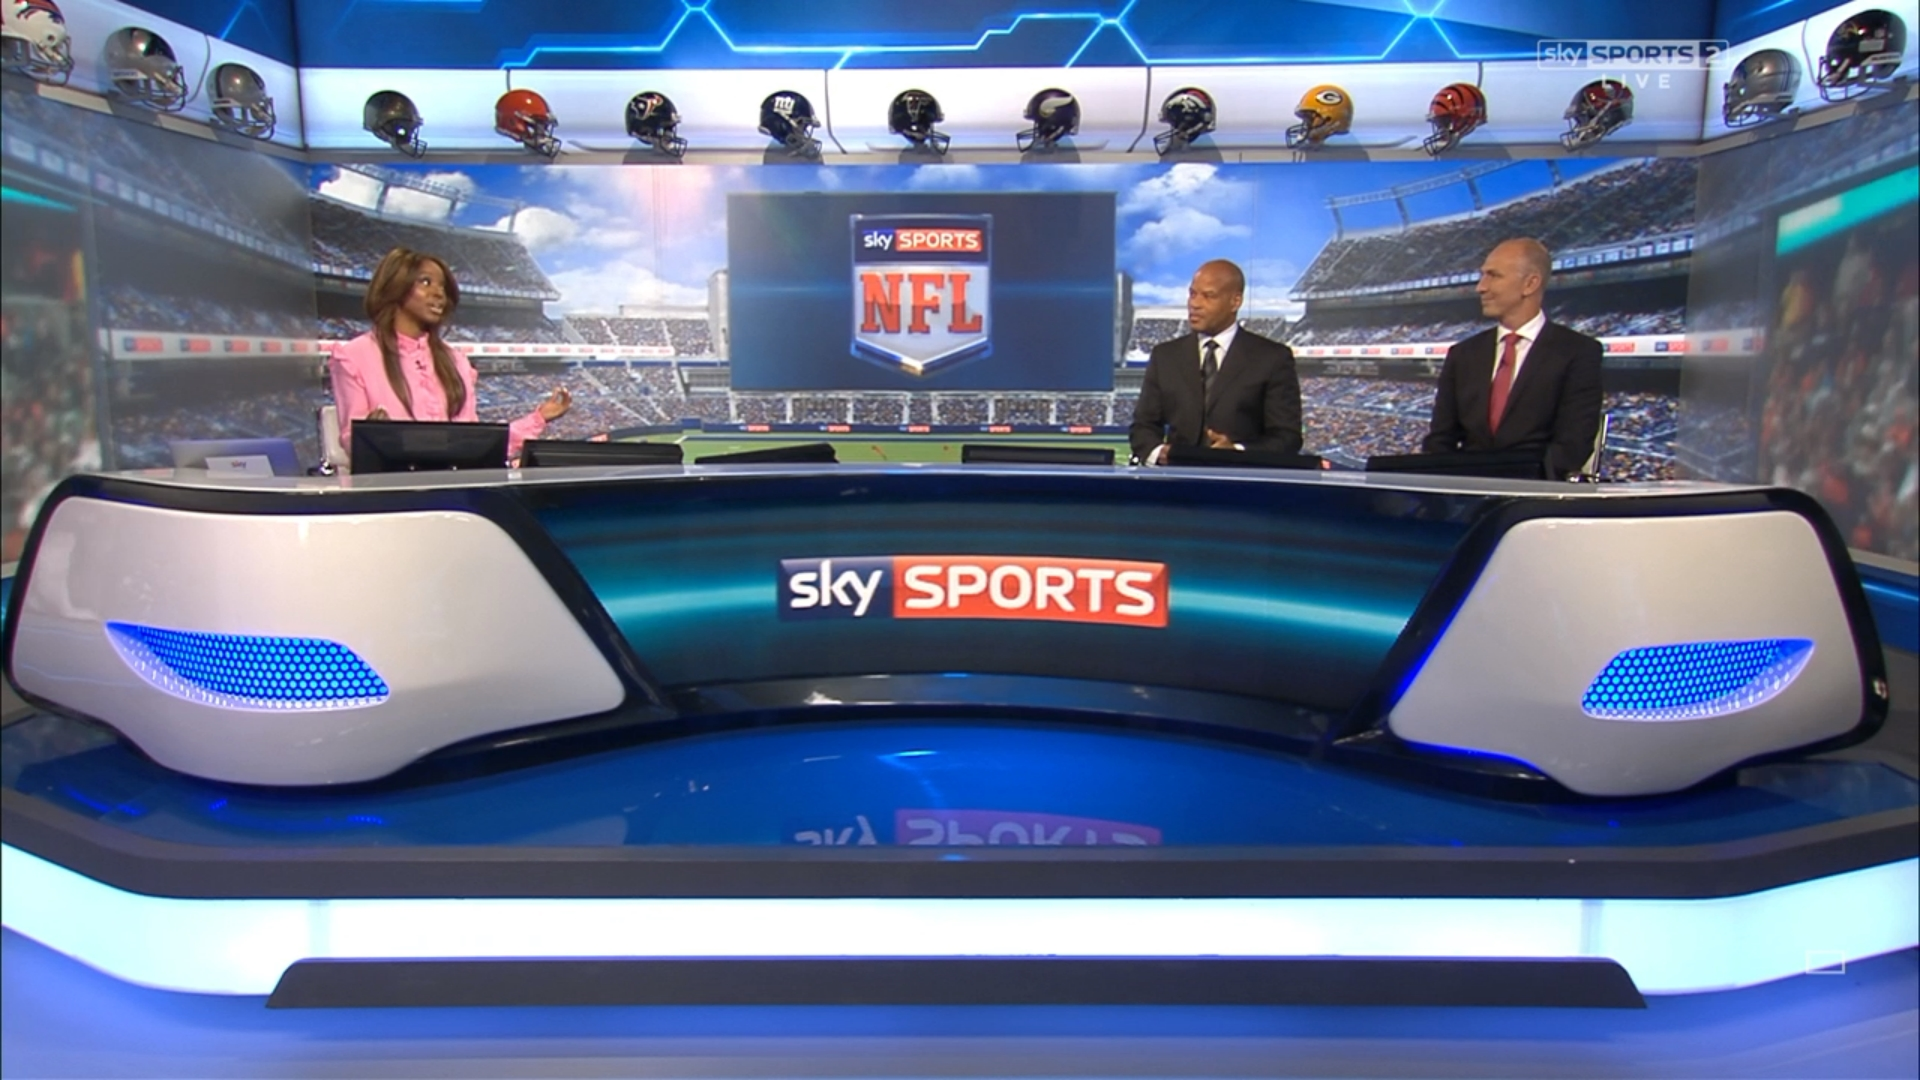 Viewers can vote for which NFL games to show on Sky Sports in week 10